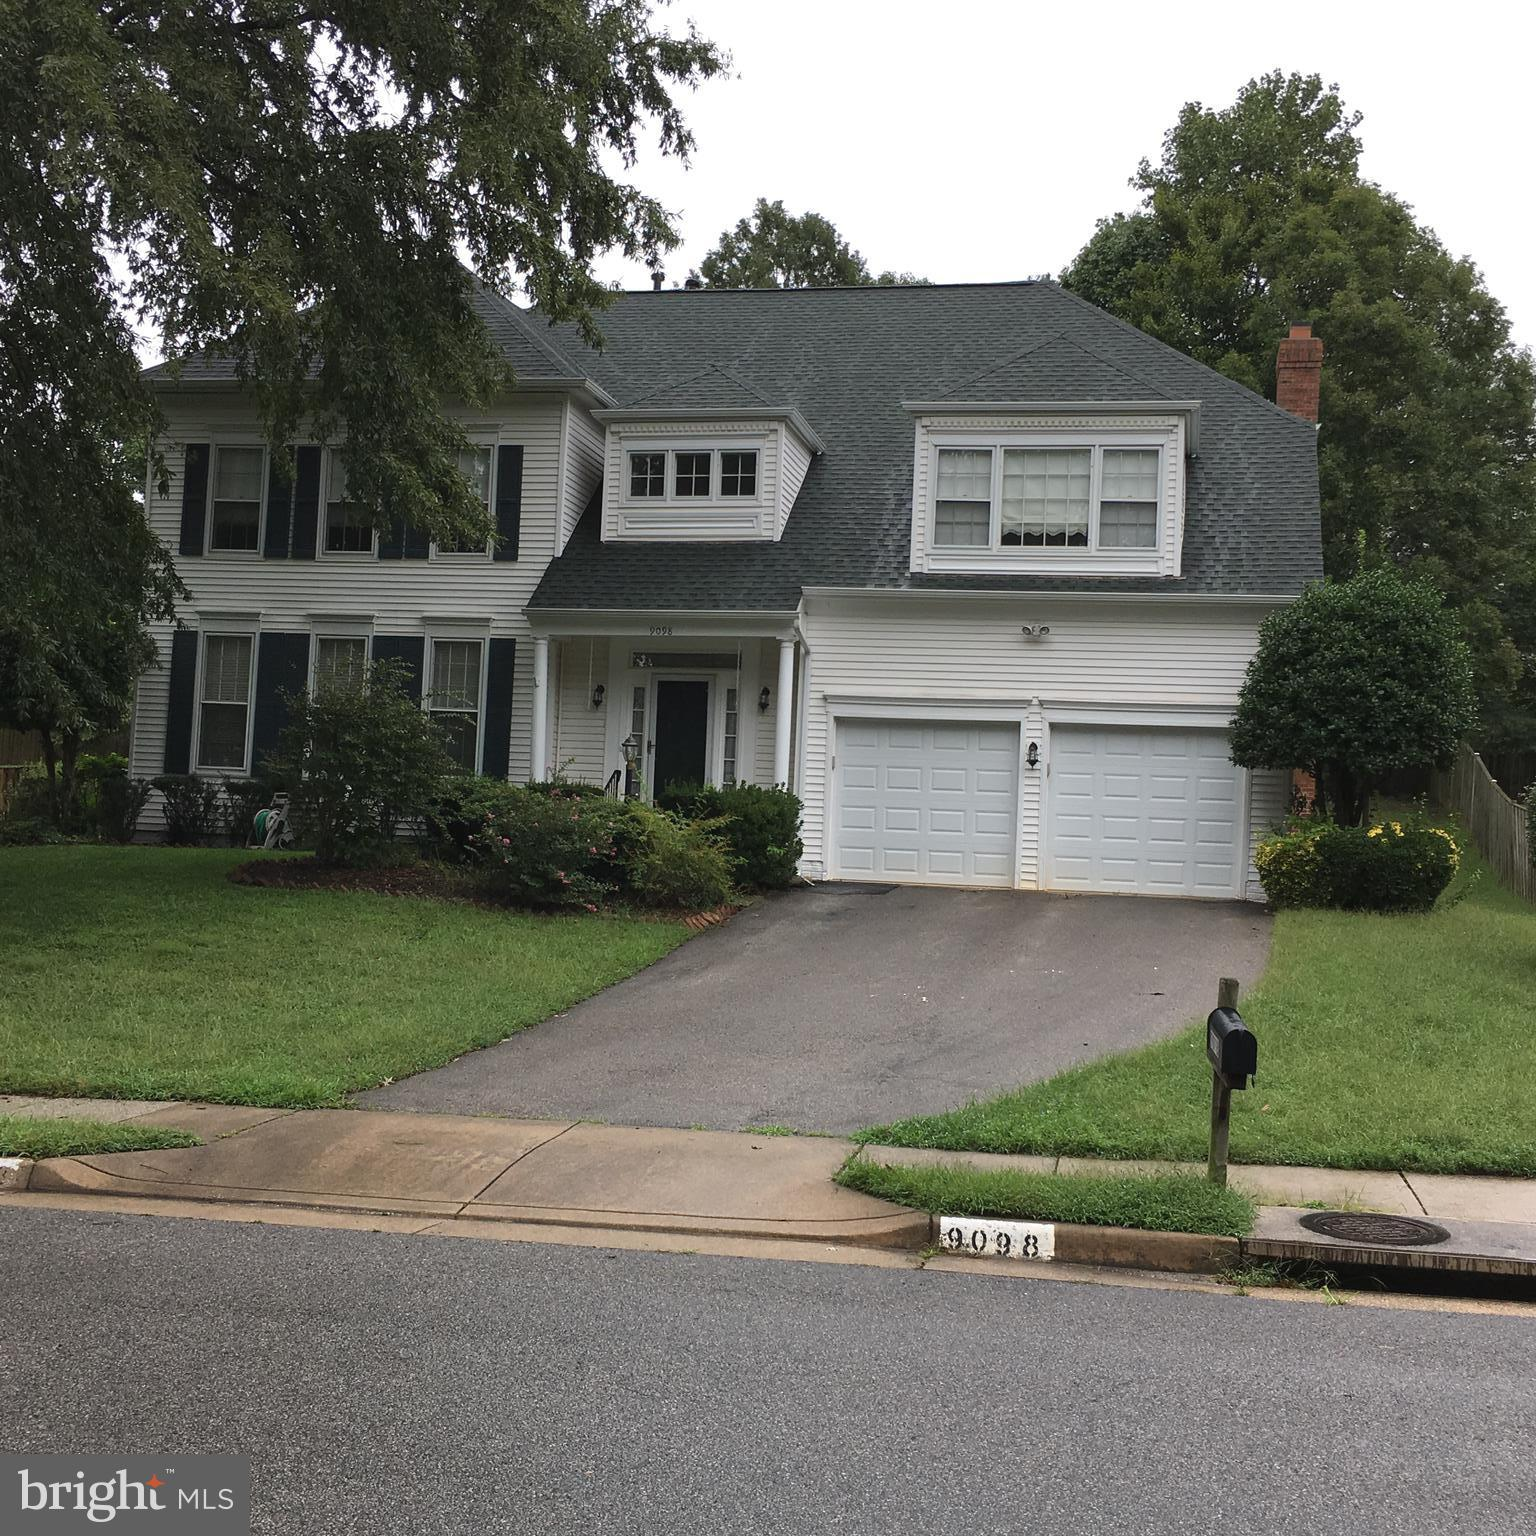 Bright & Spacious  single family home w/ 4BR + Den, 3.5 BA, Family Room w/ Hardwood Floors & gas FP, Separate DR & LR*,  Large Kit w/Bay Window, s/s Appls, Granite countertop* & Hrdw flrs* Interior freshly painted**,  Rec  Rm w/ wet bar, refrig, drink cooler, sink, and microwave* huge storage Rm*